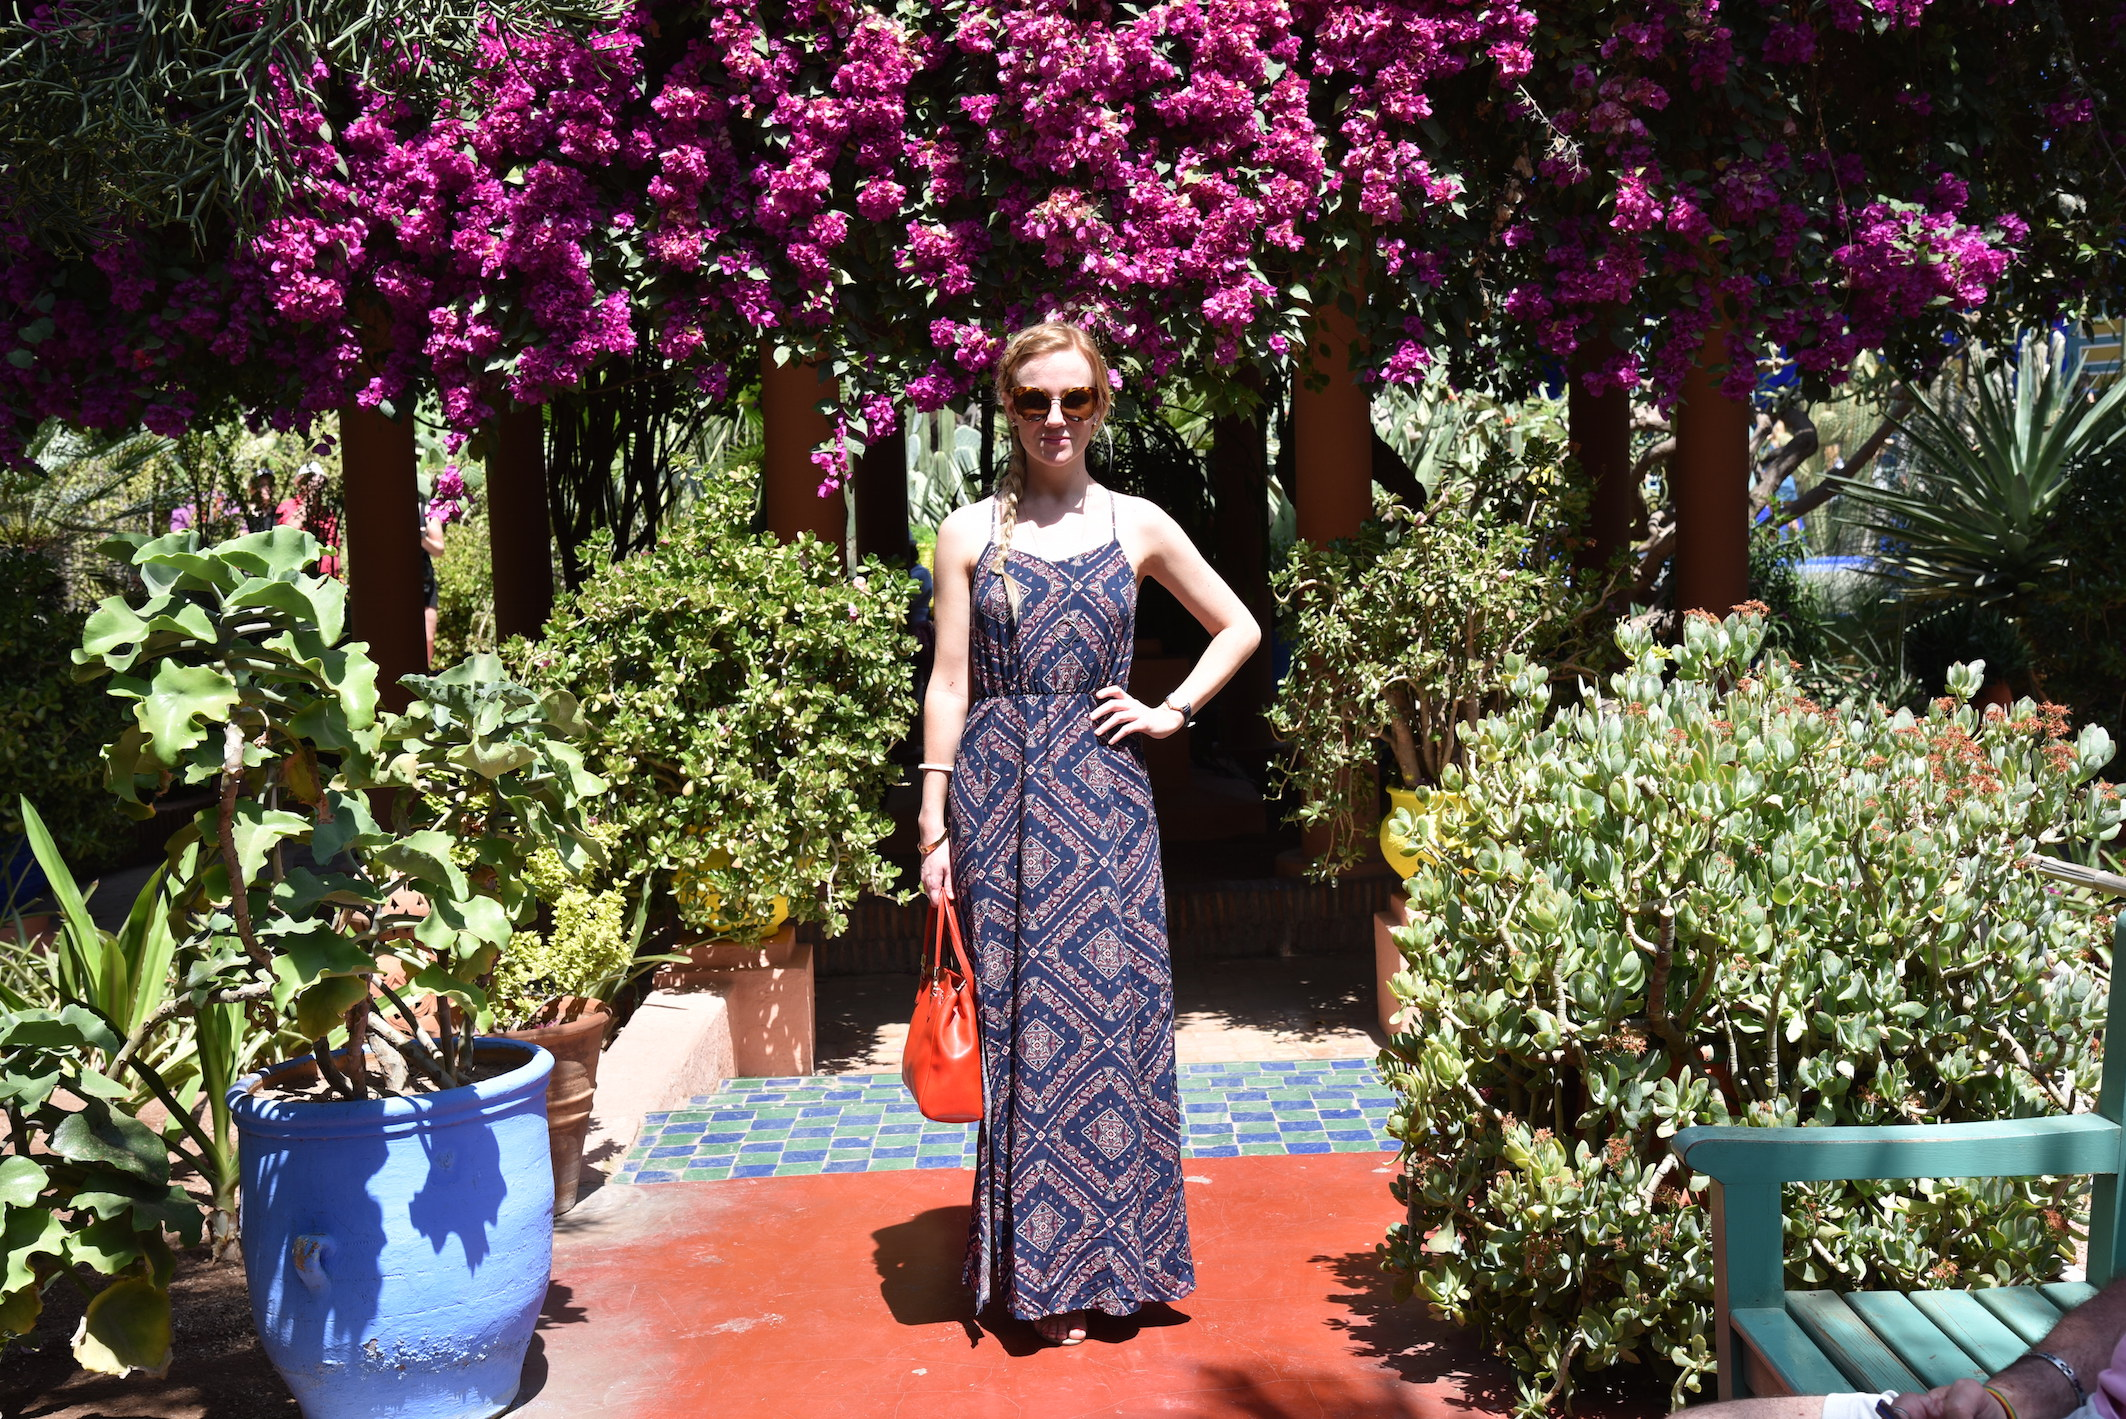 OOTD-Fashion-Blogger-Travel-Style-Marrakech-MyBigAppleCity